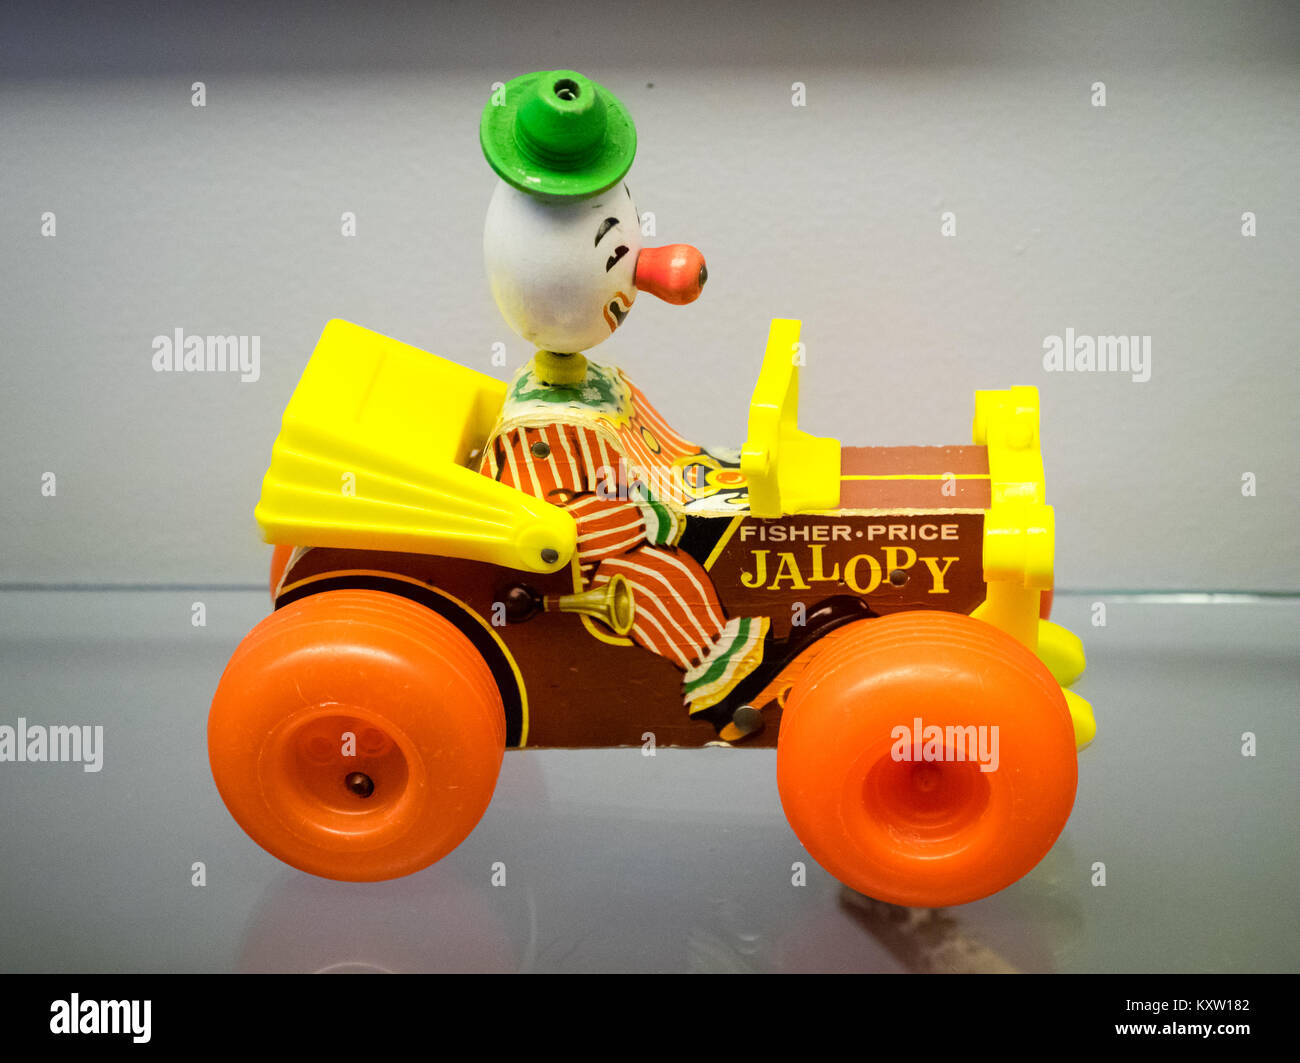 Fisher price toy stock photos fisher price toy stock images alamy a fisher price jolly jalopy 724 a classic toy manufactured by fisher buycottarizona